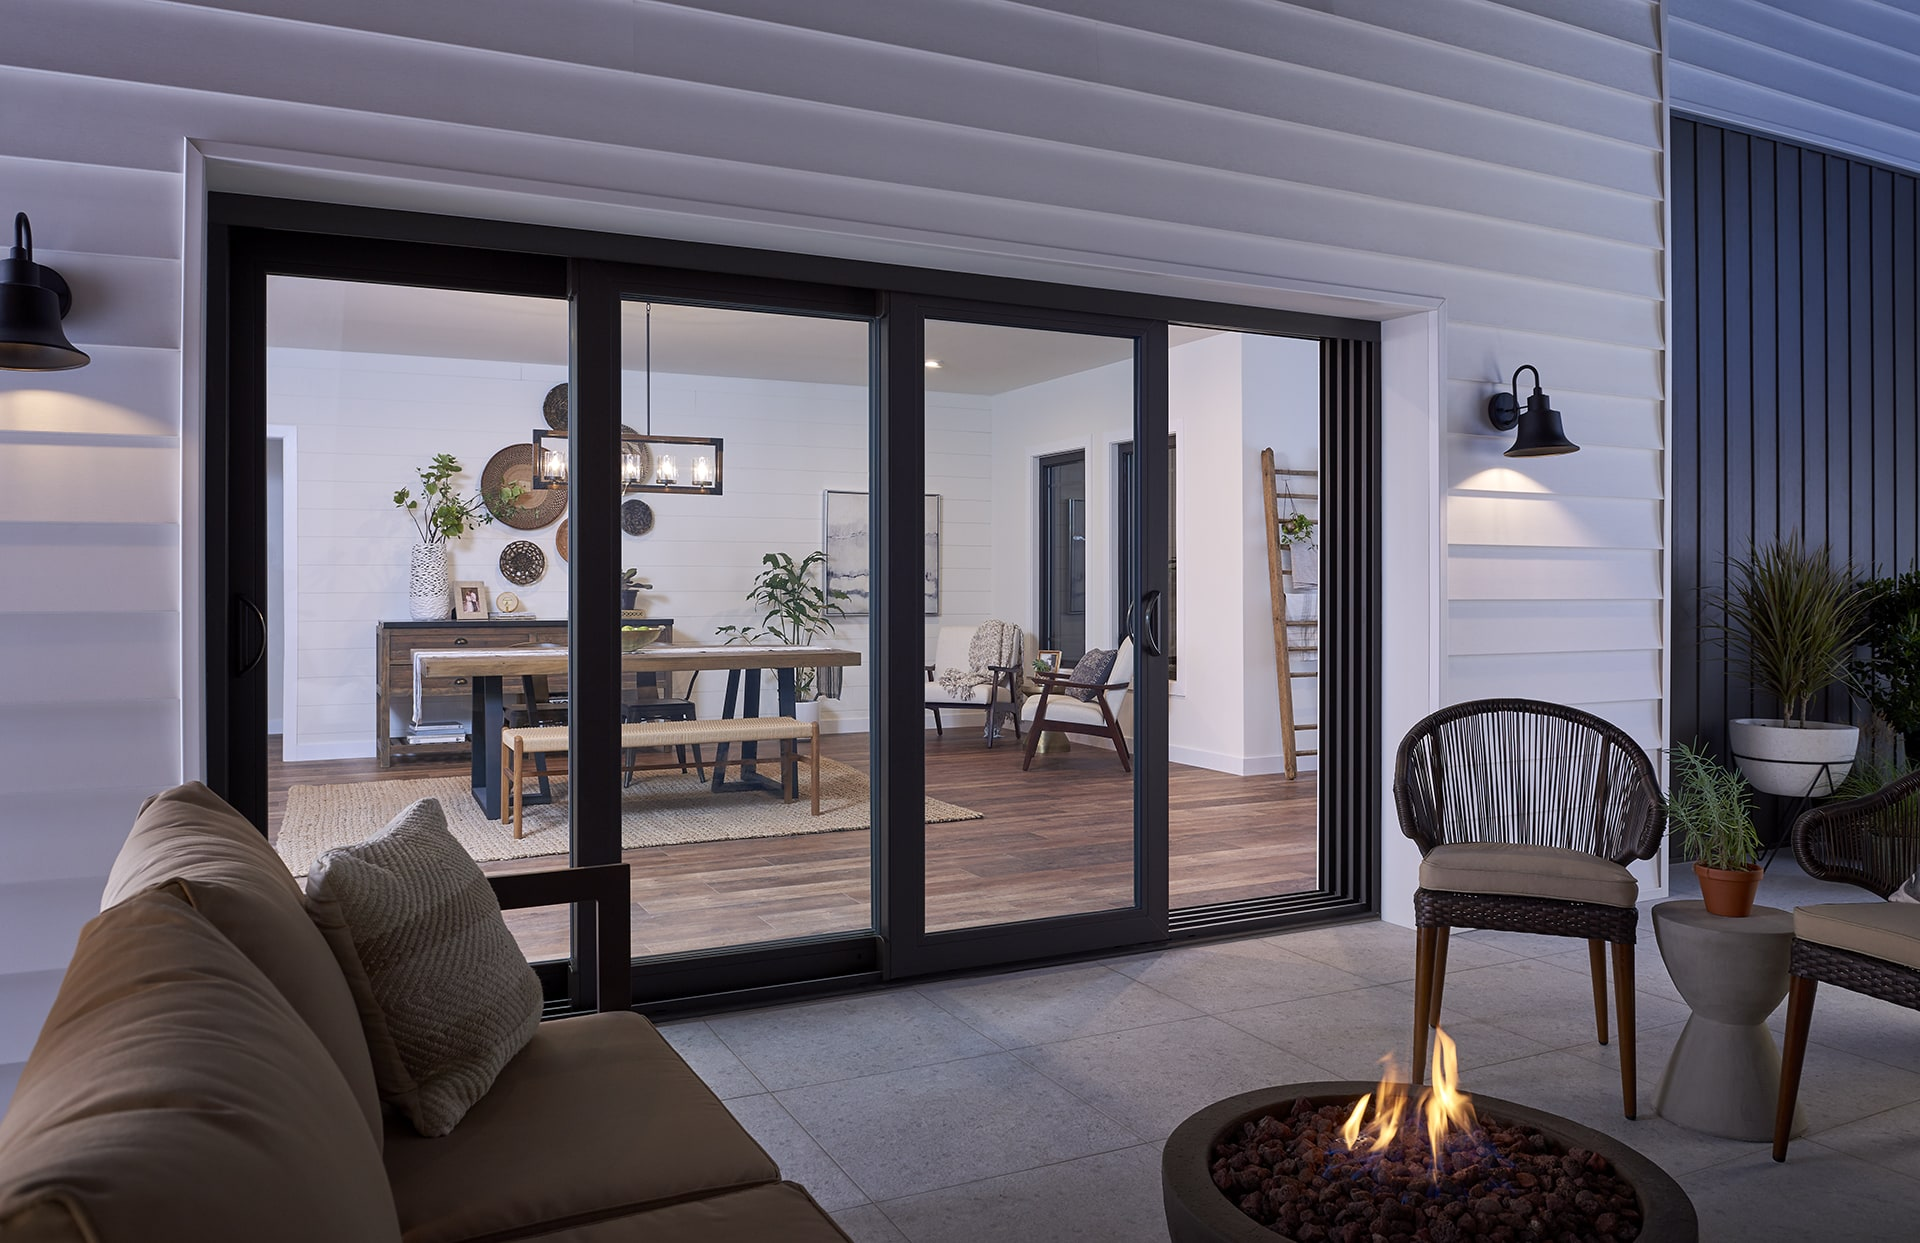 Black French rail door opens to modern patio with fire pit